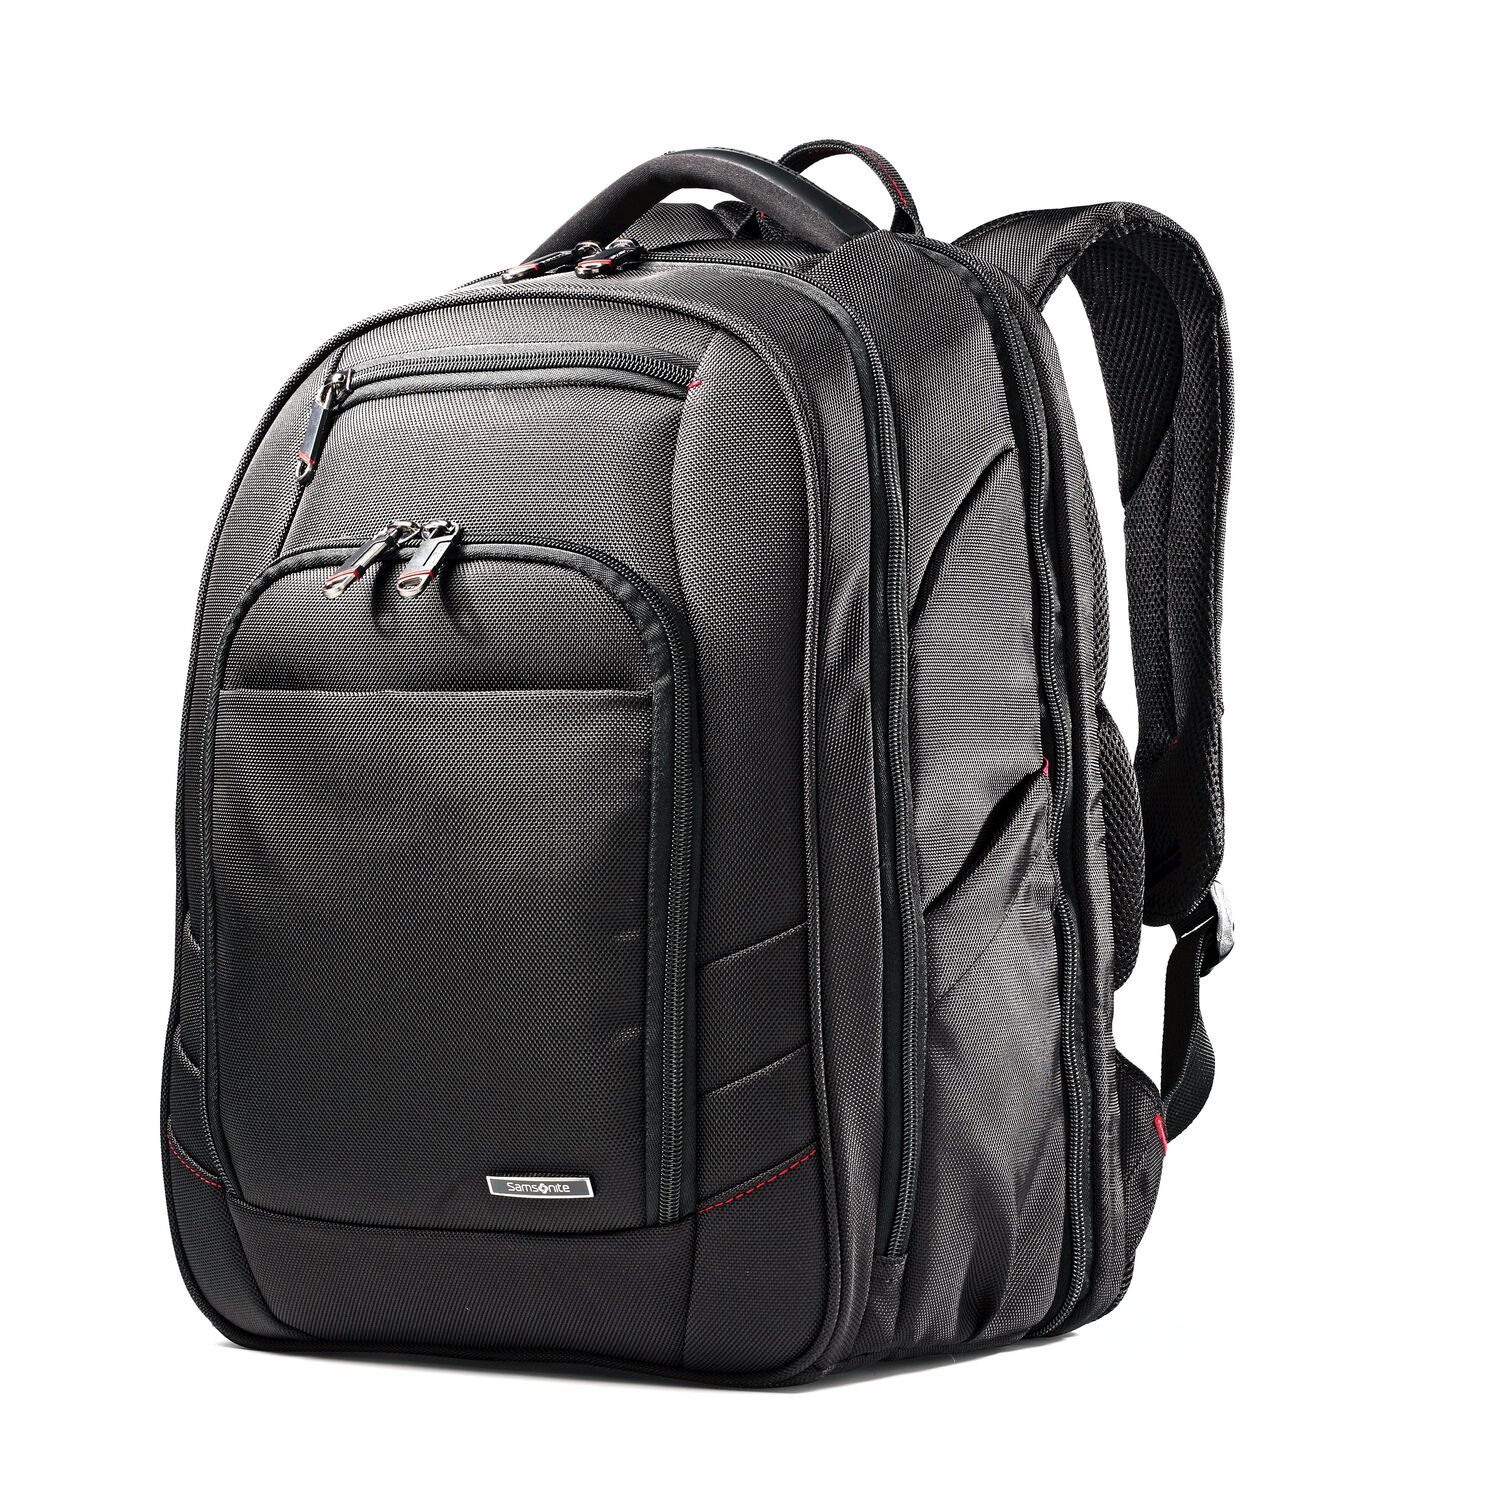 samsonite xenon 2 checkpoint friendly laptop backpack. Black Bedroom Furniture Sets. Home Design Ideas